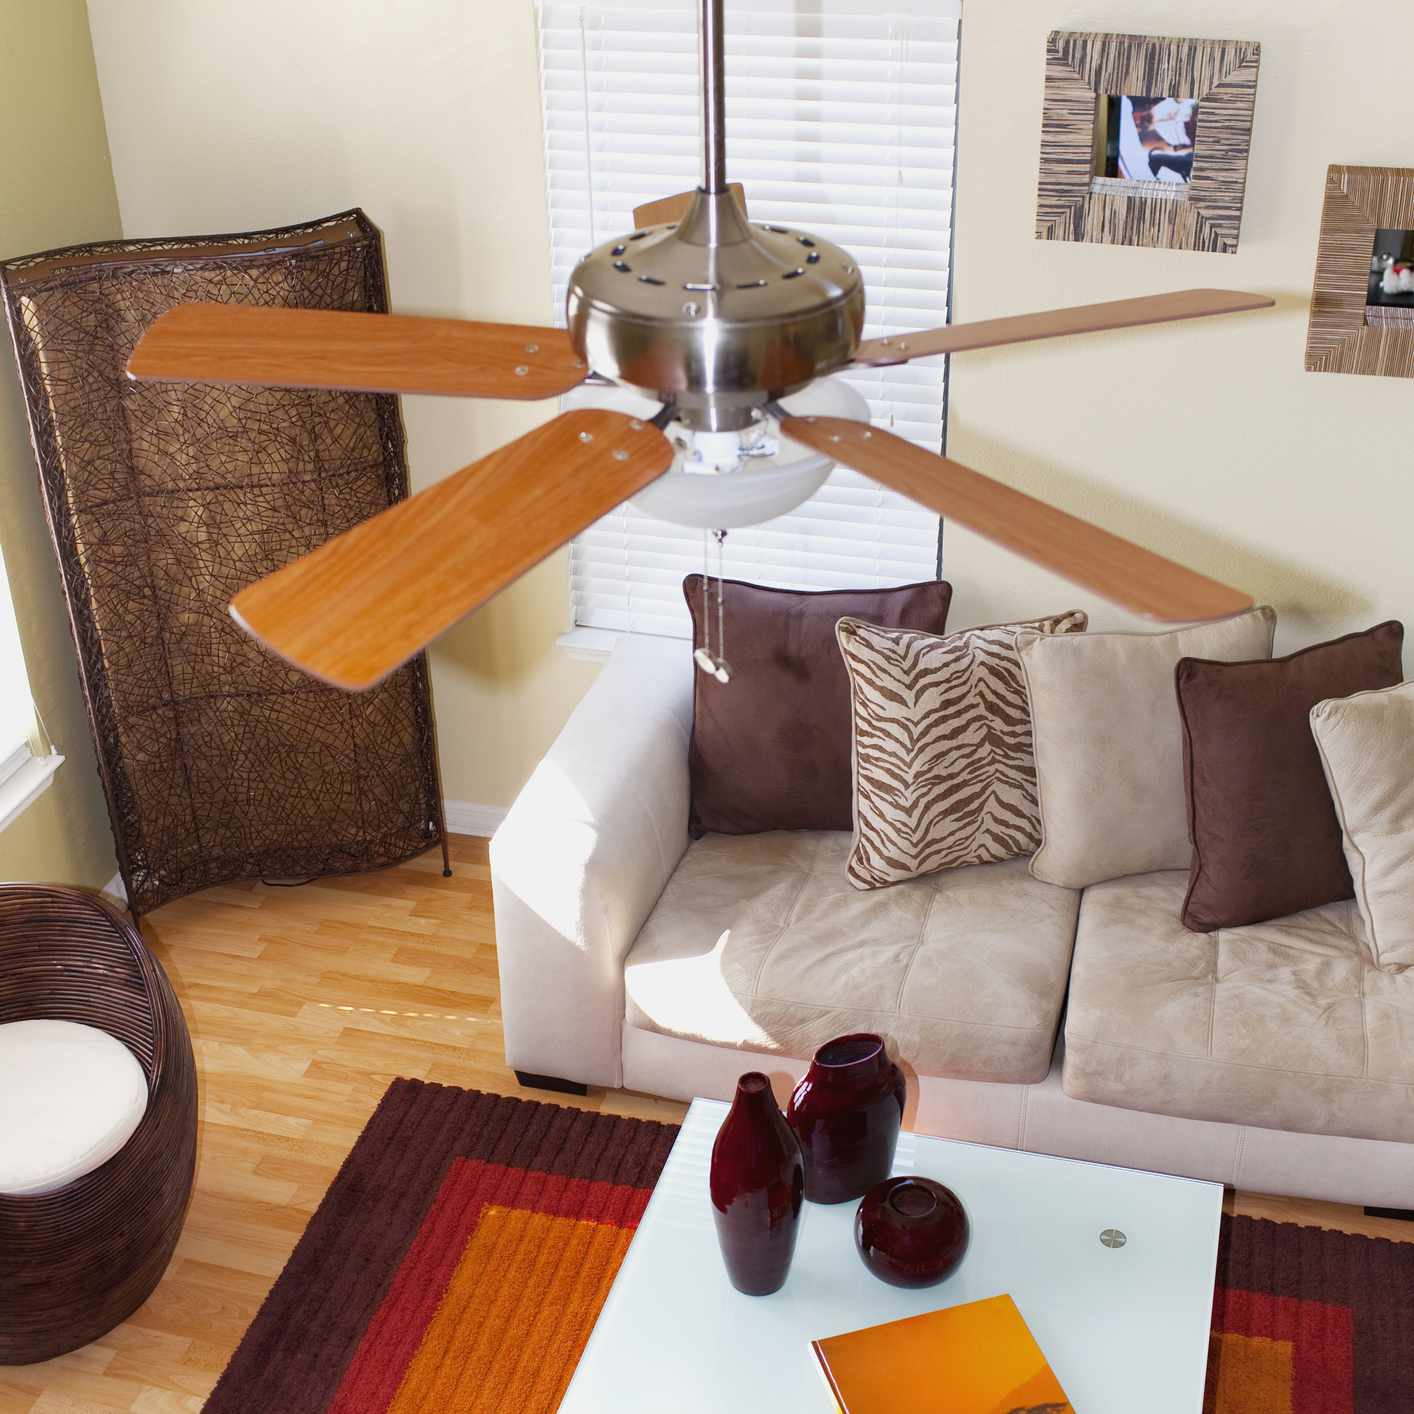 use a duster to clean ceiling fans and light fixtures